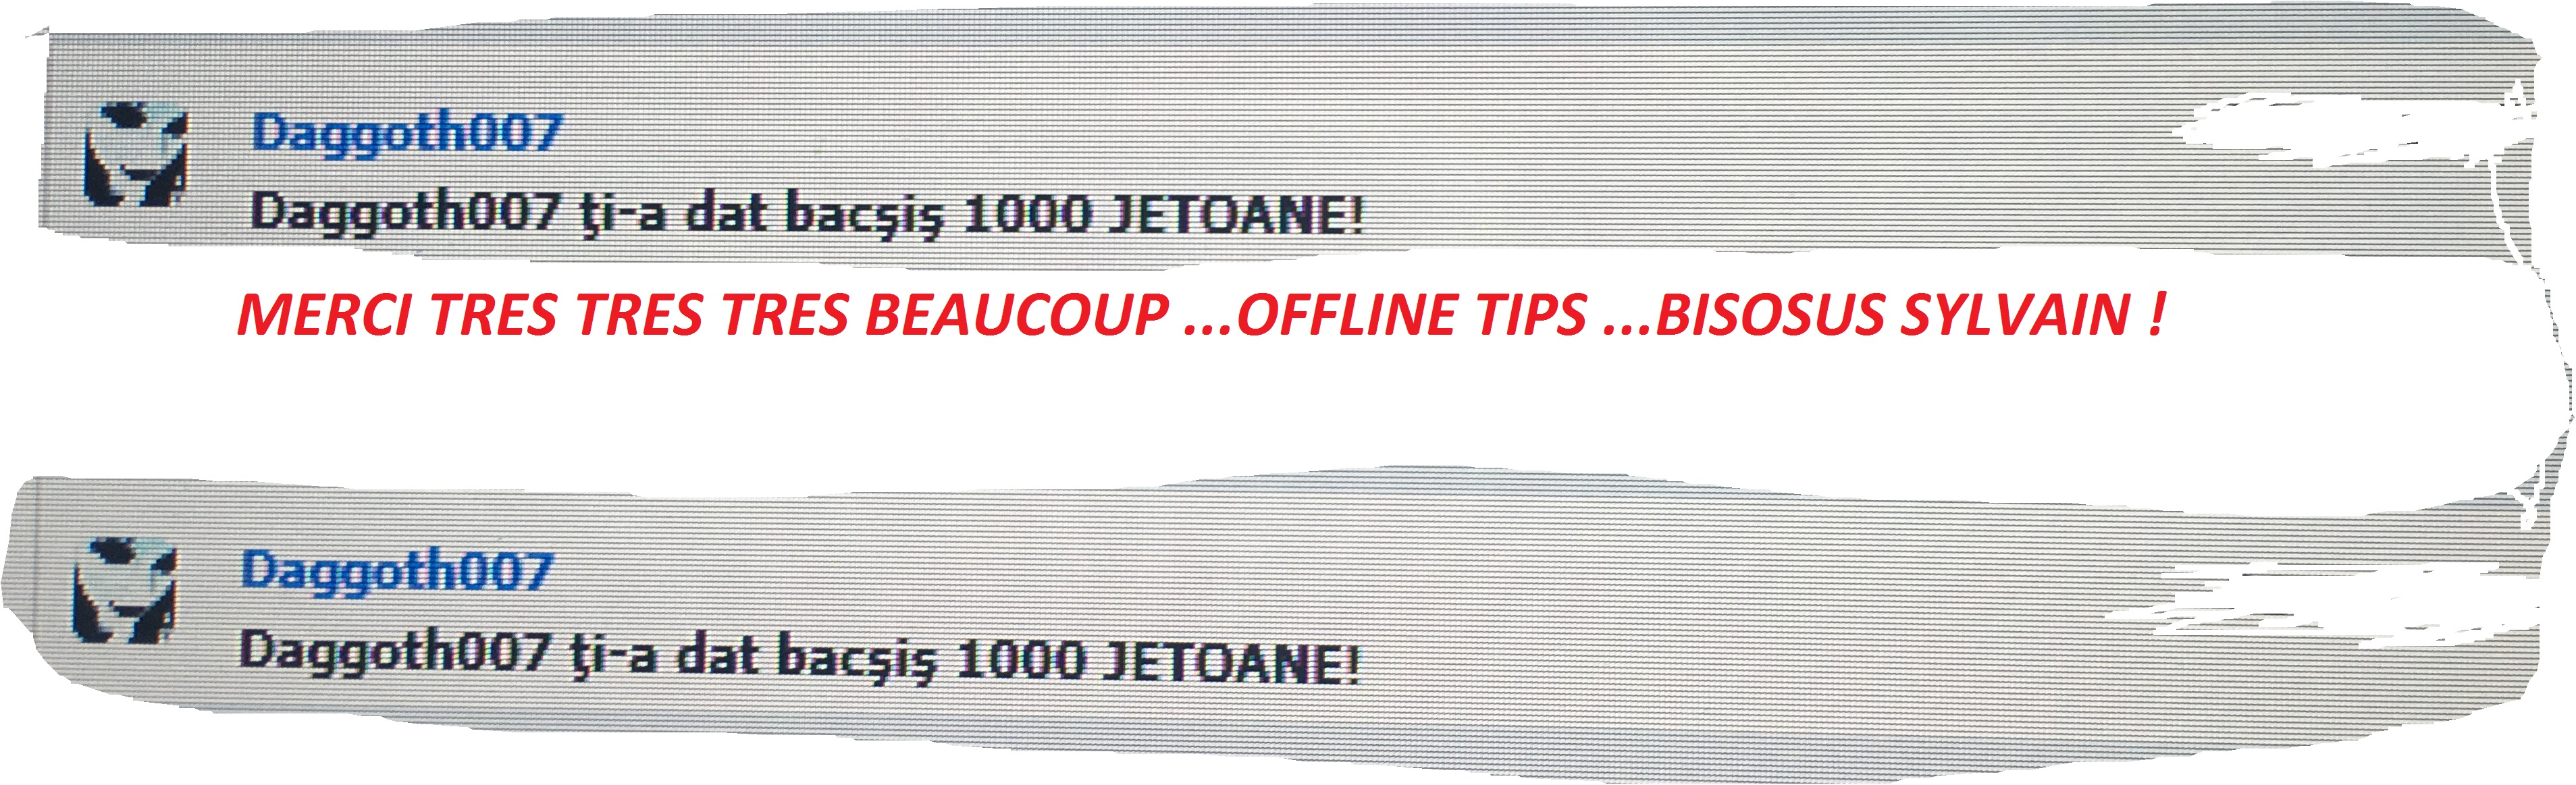 catwoman90 -Merci tres beaucoup Daggoth007-  1000+1000=2000 custom pic 1